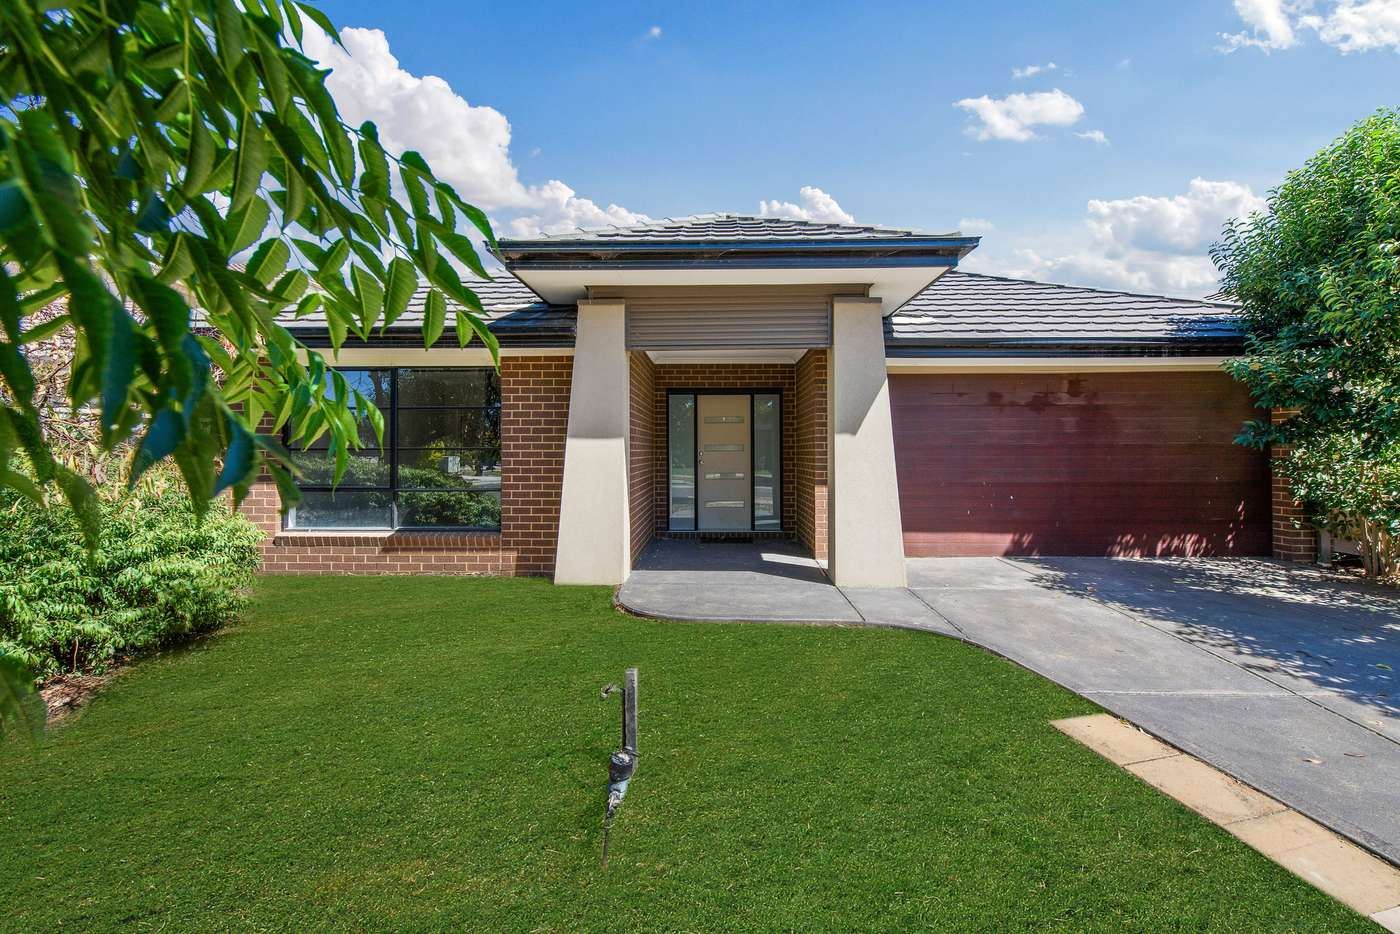 Main view of Homely house listing, 78 Lawson Way, Caroline Springs VIC 3023